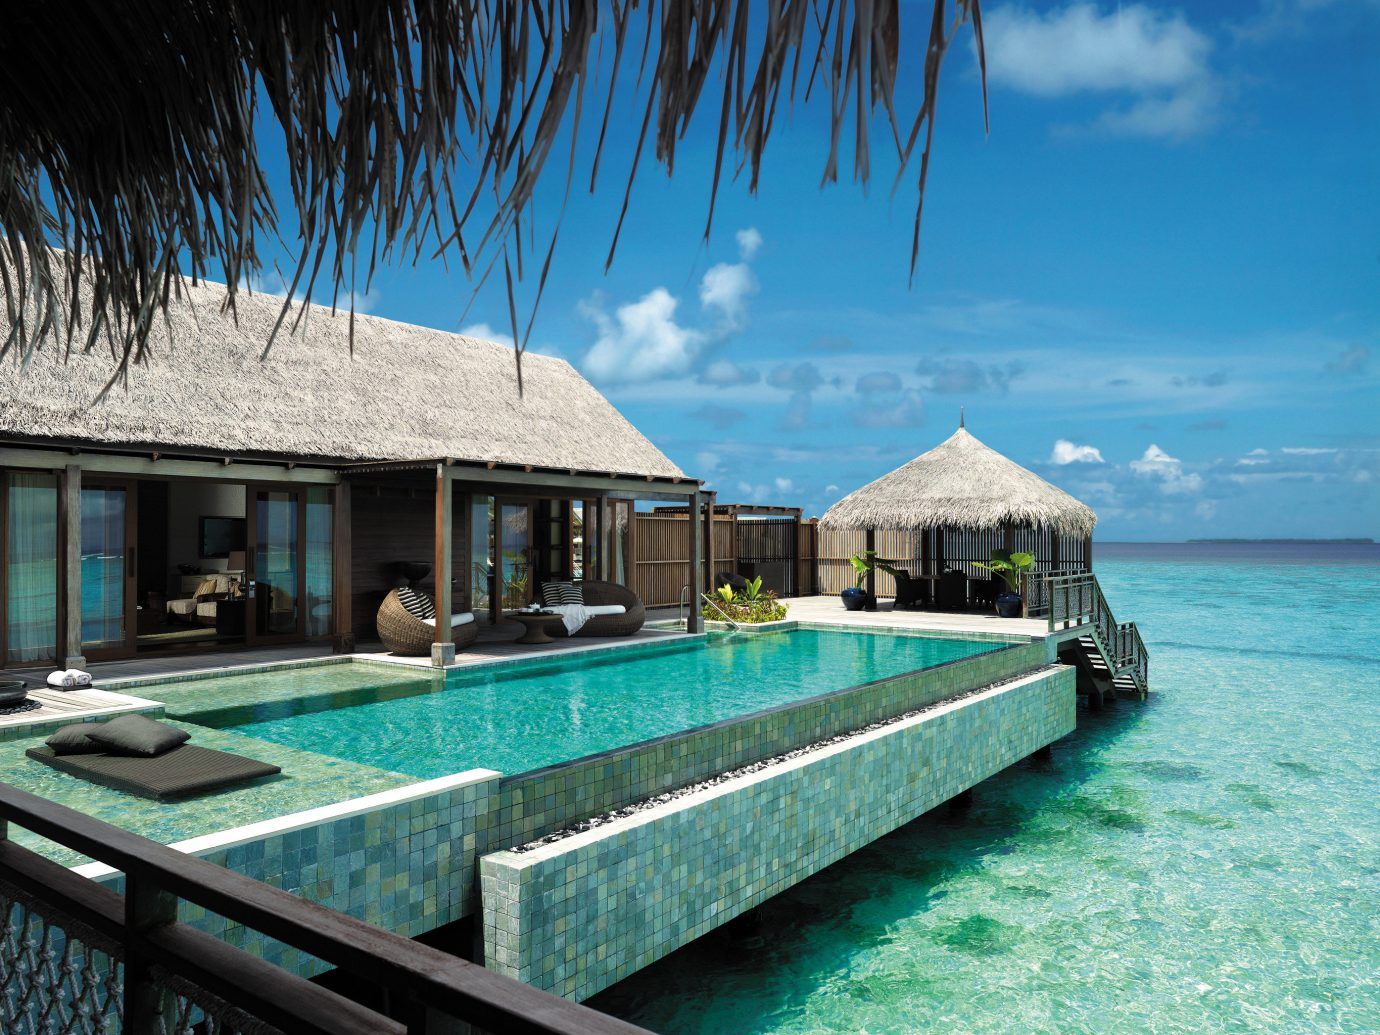 Exterior pool at Shangri-La's Villingili Resort